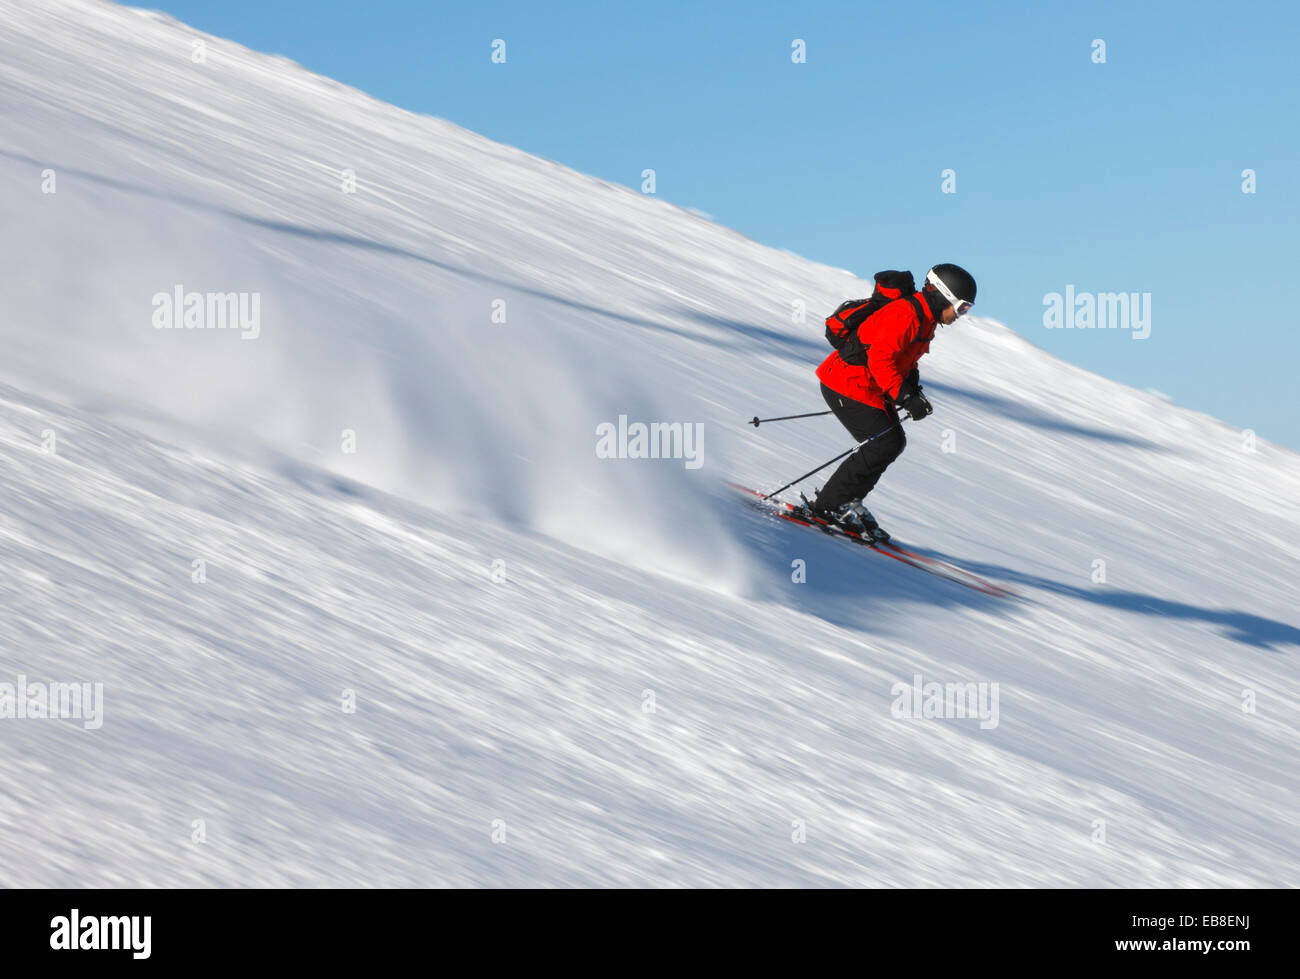 Skier downhill - Stock Image